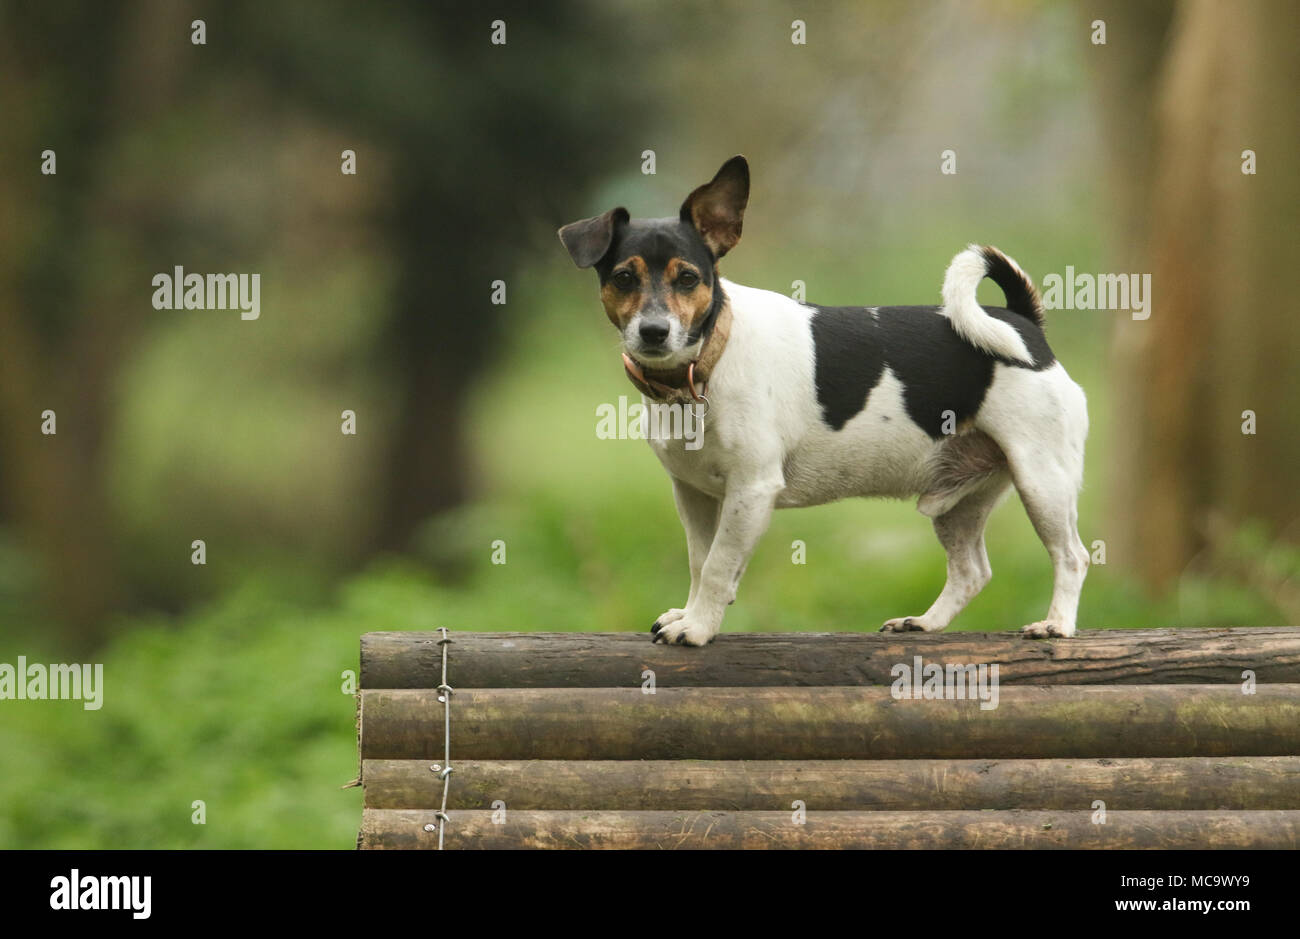 A cute Jack Russell Terrier Dog (Canis lupus familiaris) standing on top of a wooden training structure. - Stock Image